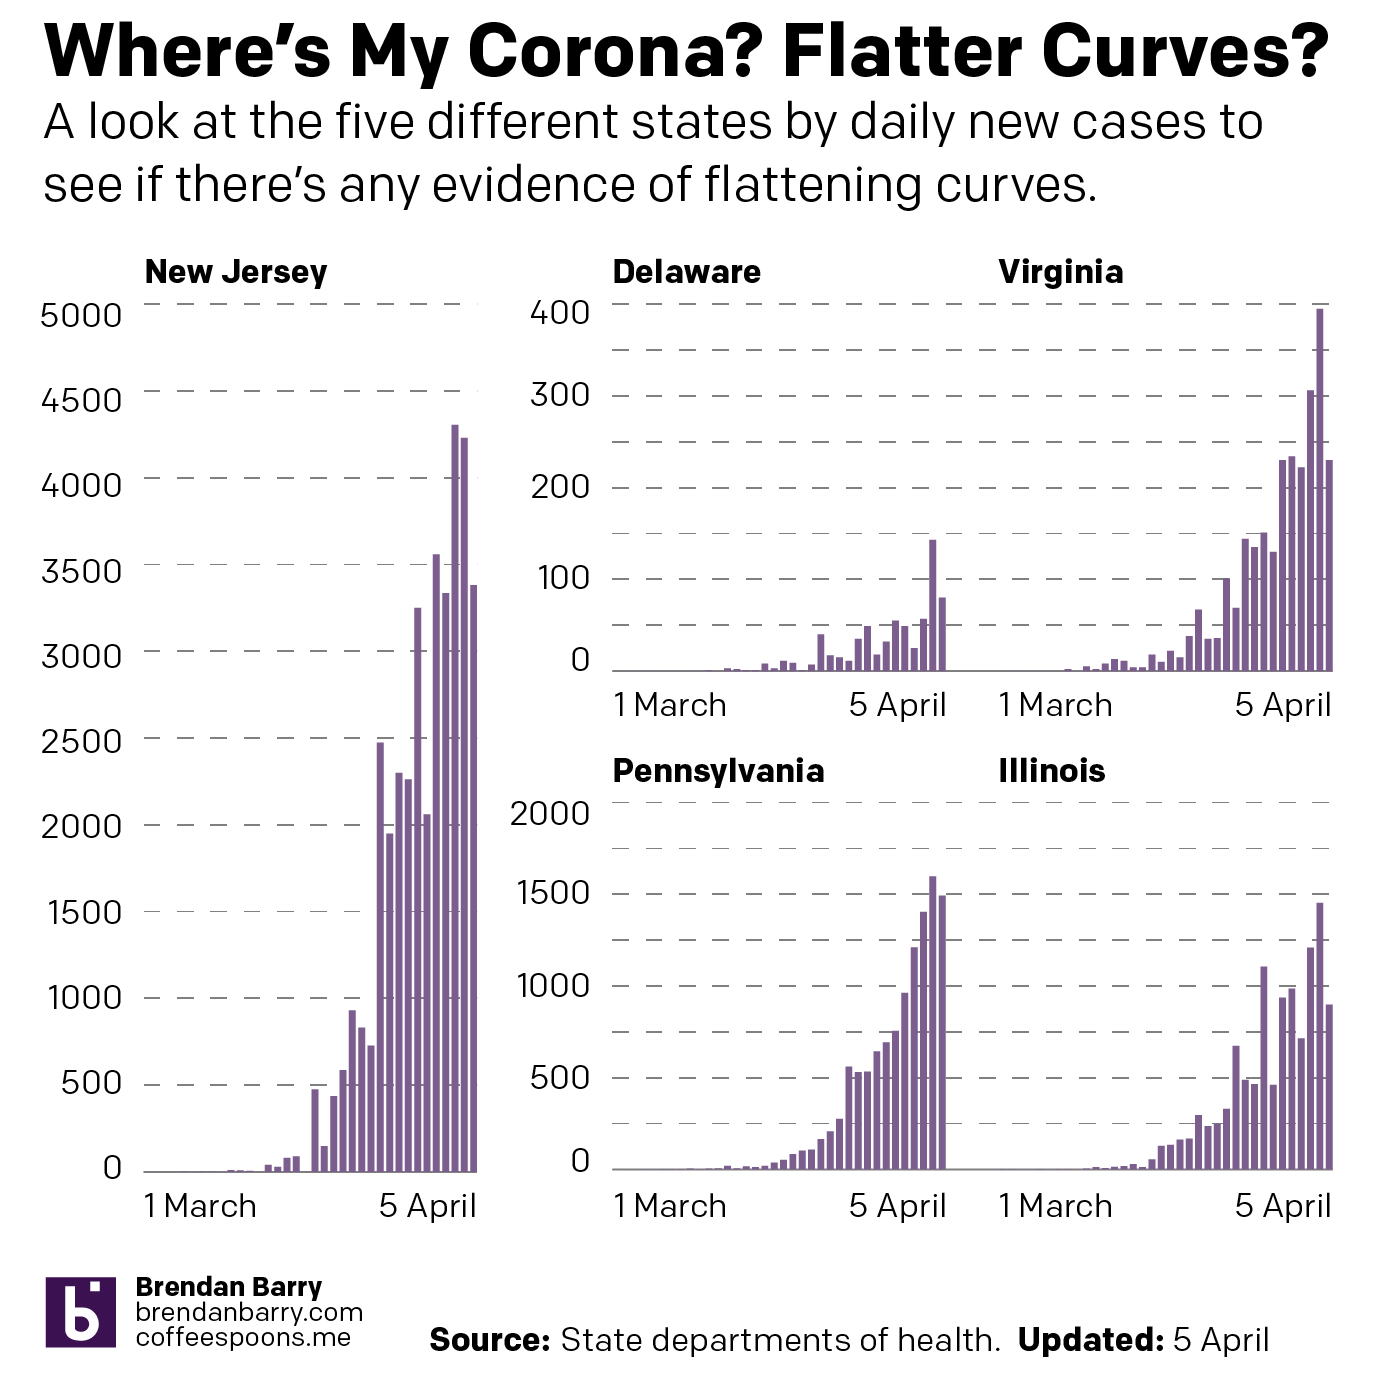 The case for flattening curves